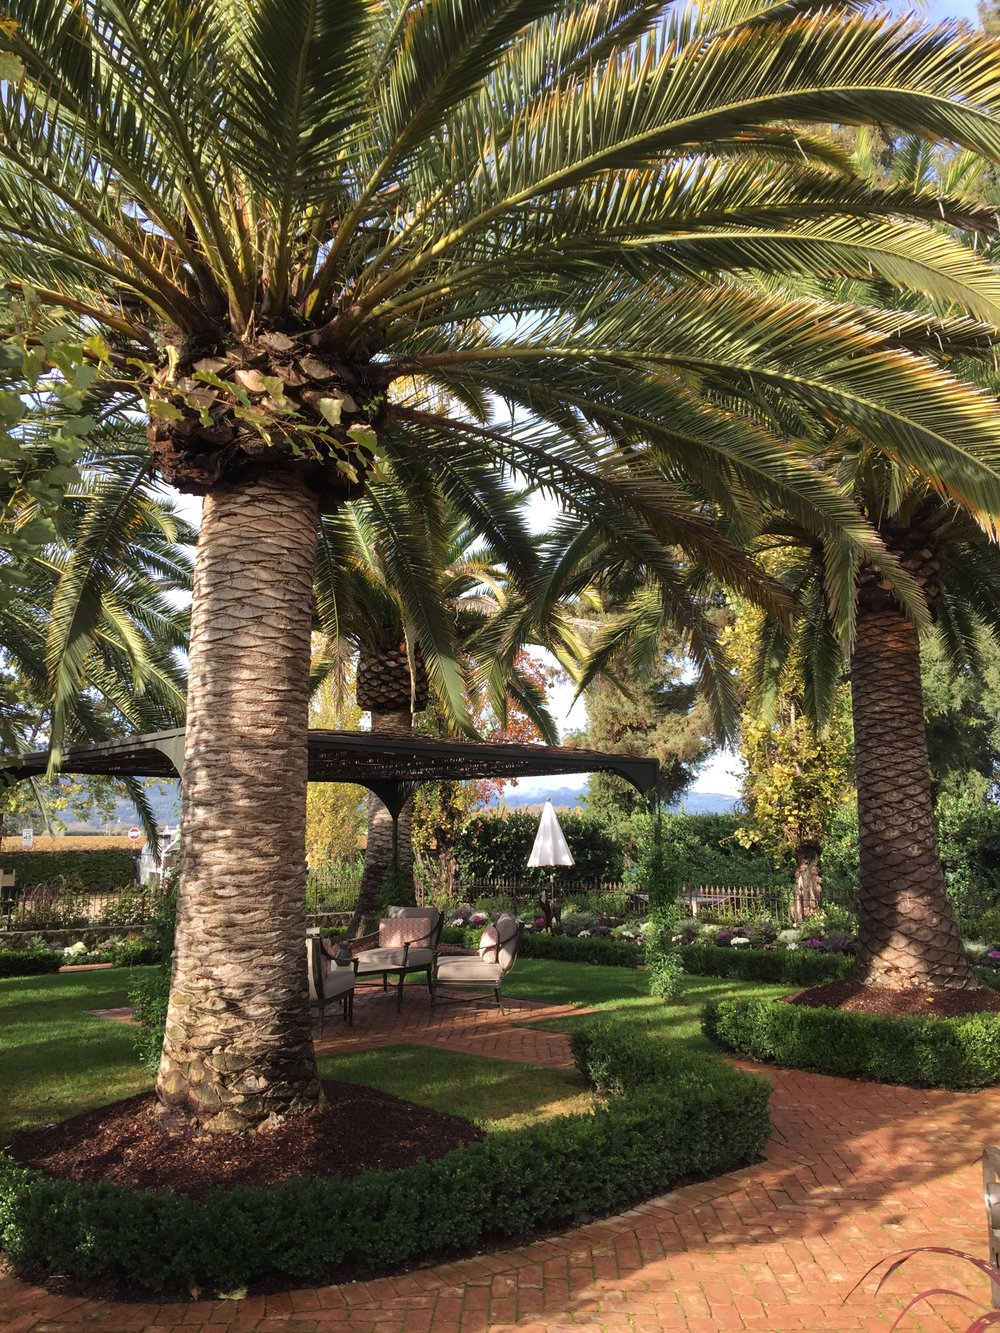 The beautiful grounds of the Caymus Winery